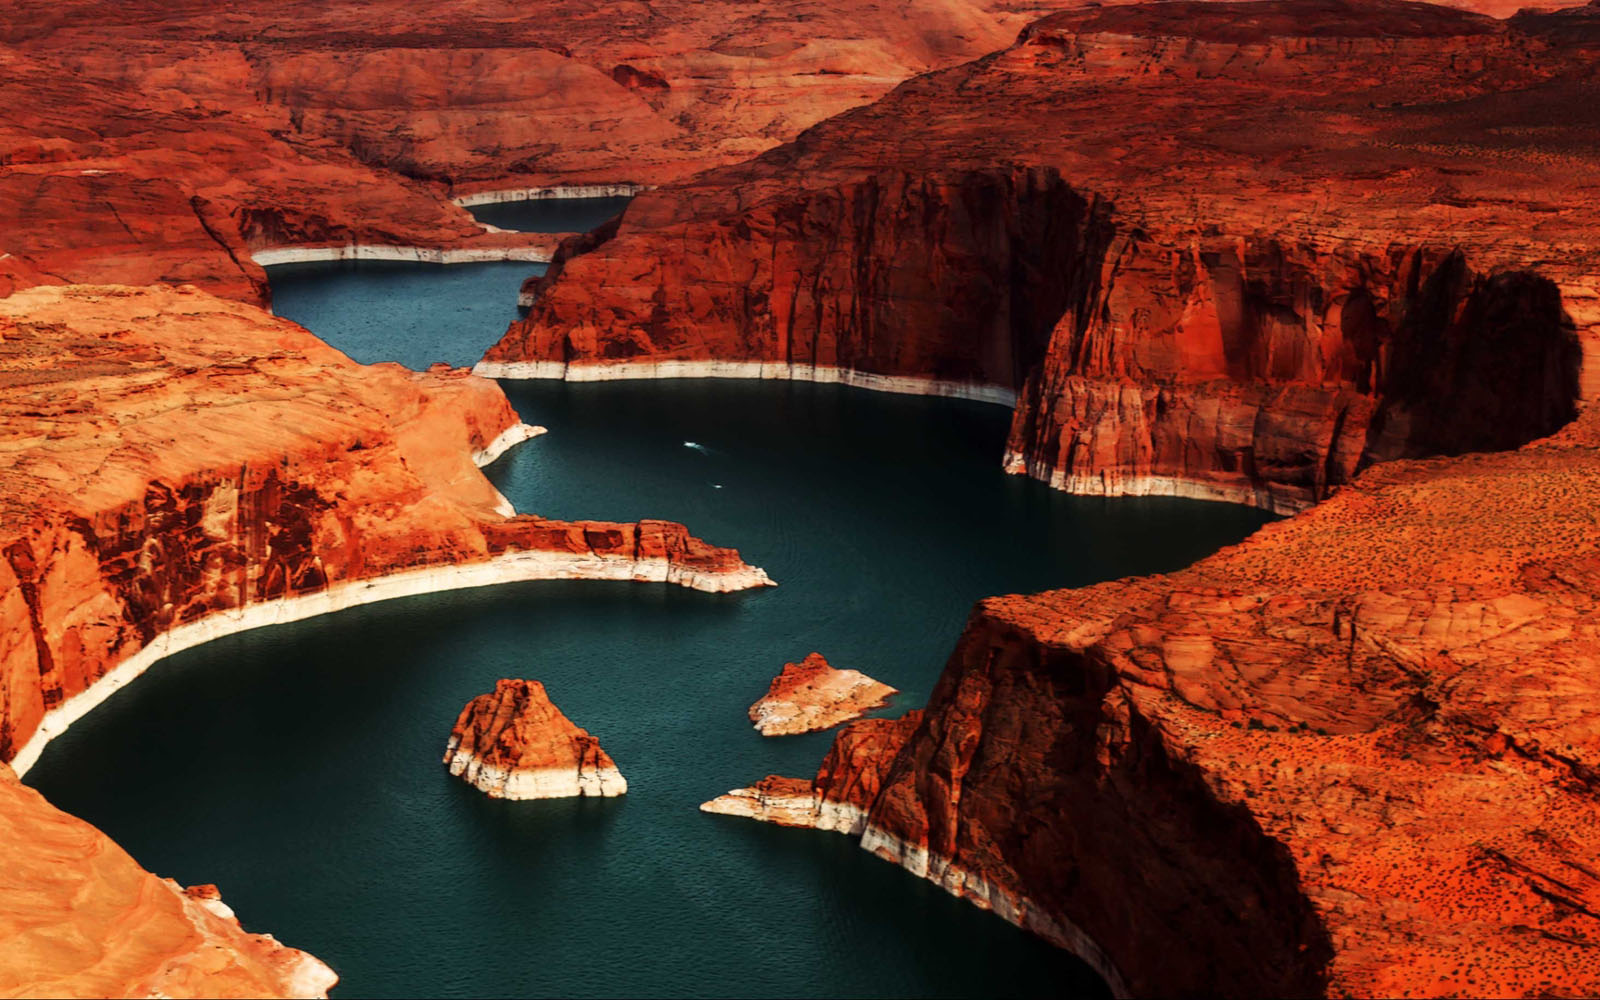 Hd Wallpapers Of Cars And Bikes Free Download Wallpapers Lake Powell Wallpapers